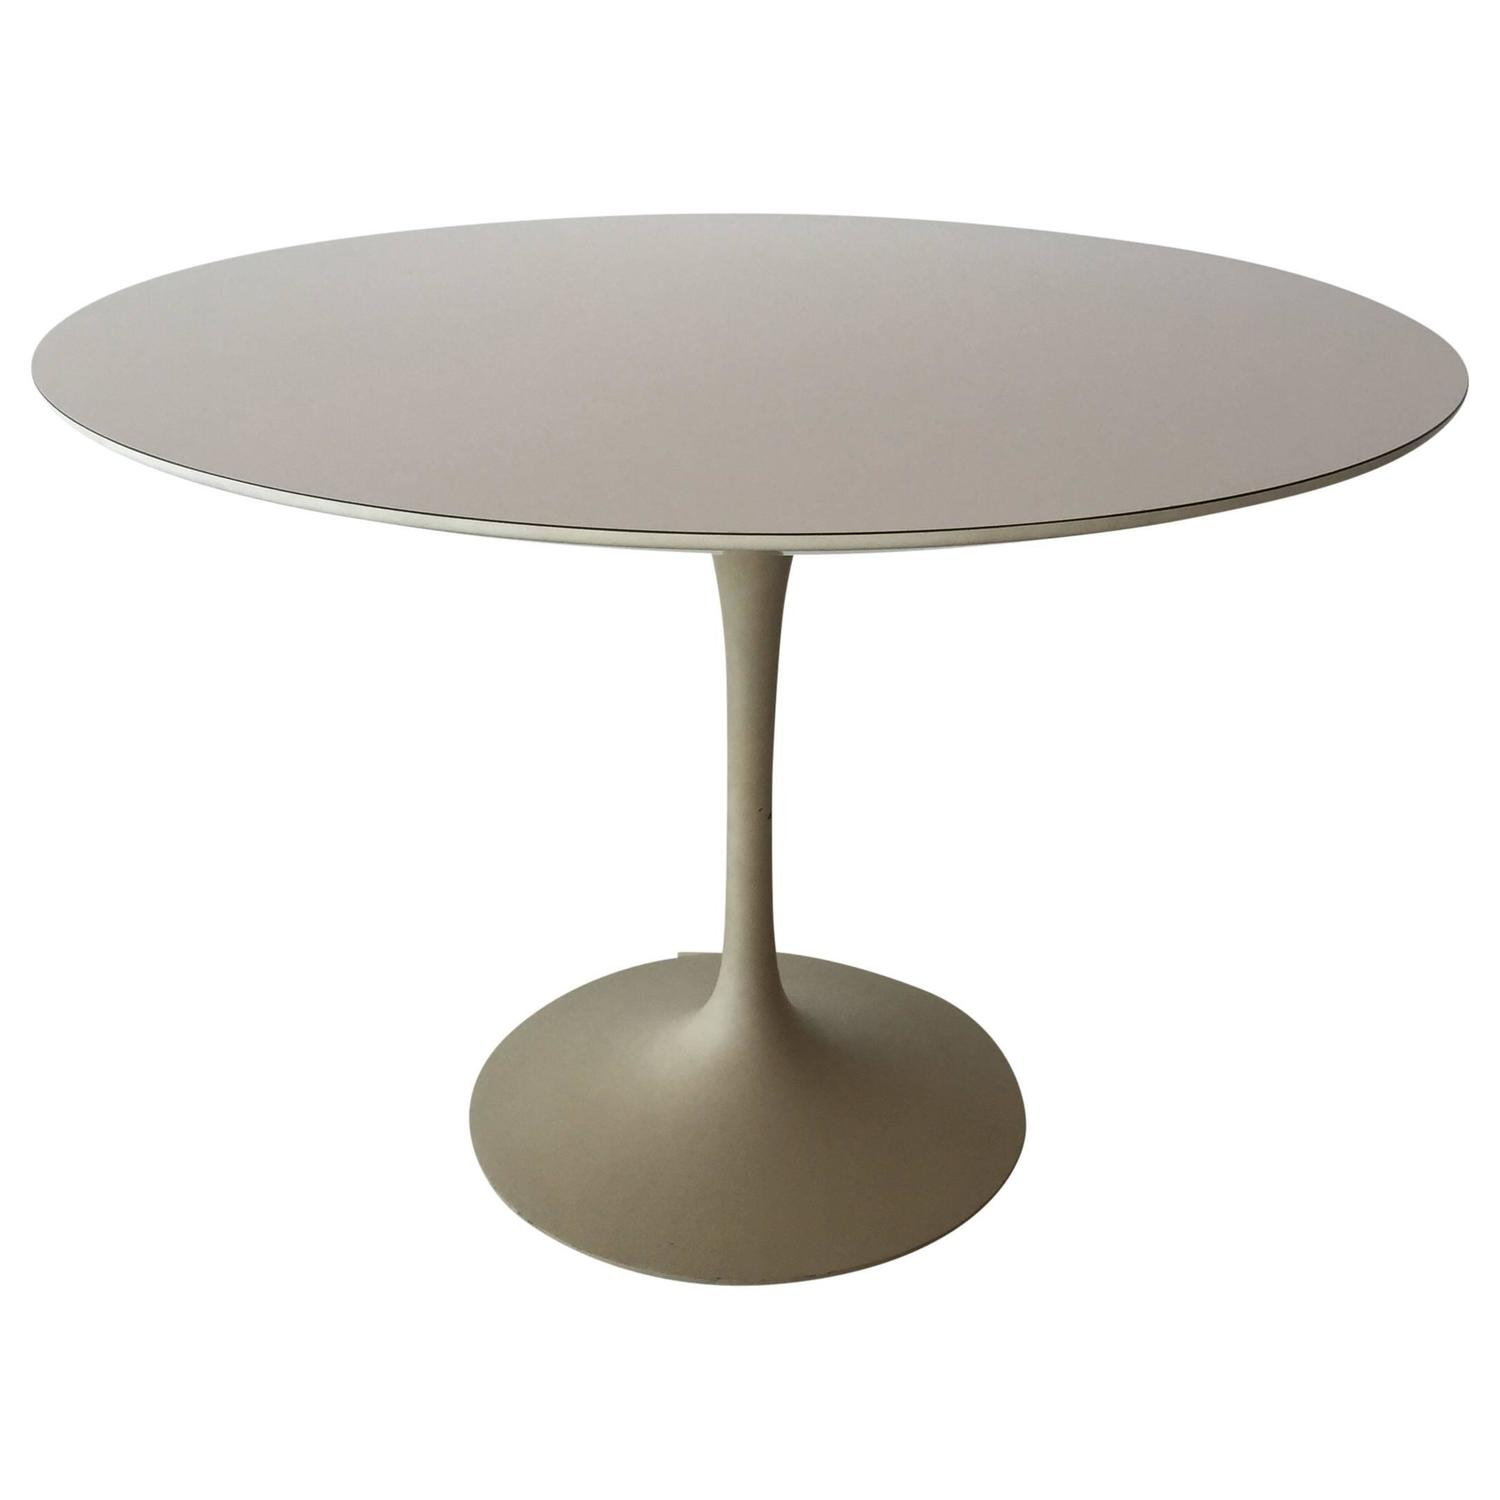 Eero saarinen for knoll associates 39 tulip 39 dining table circa 1960s for sale at 1stdibs